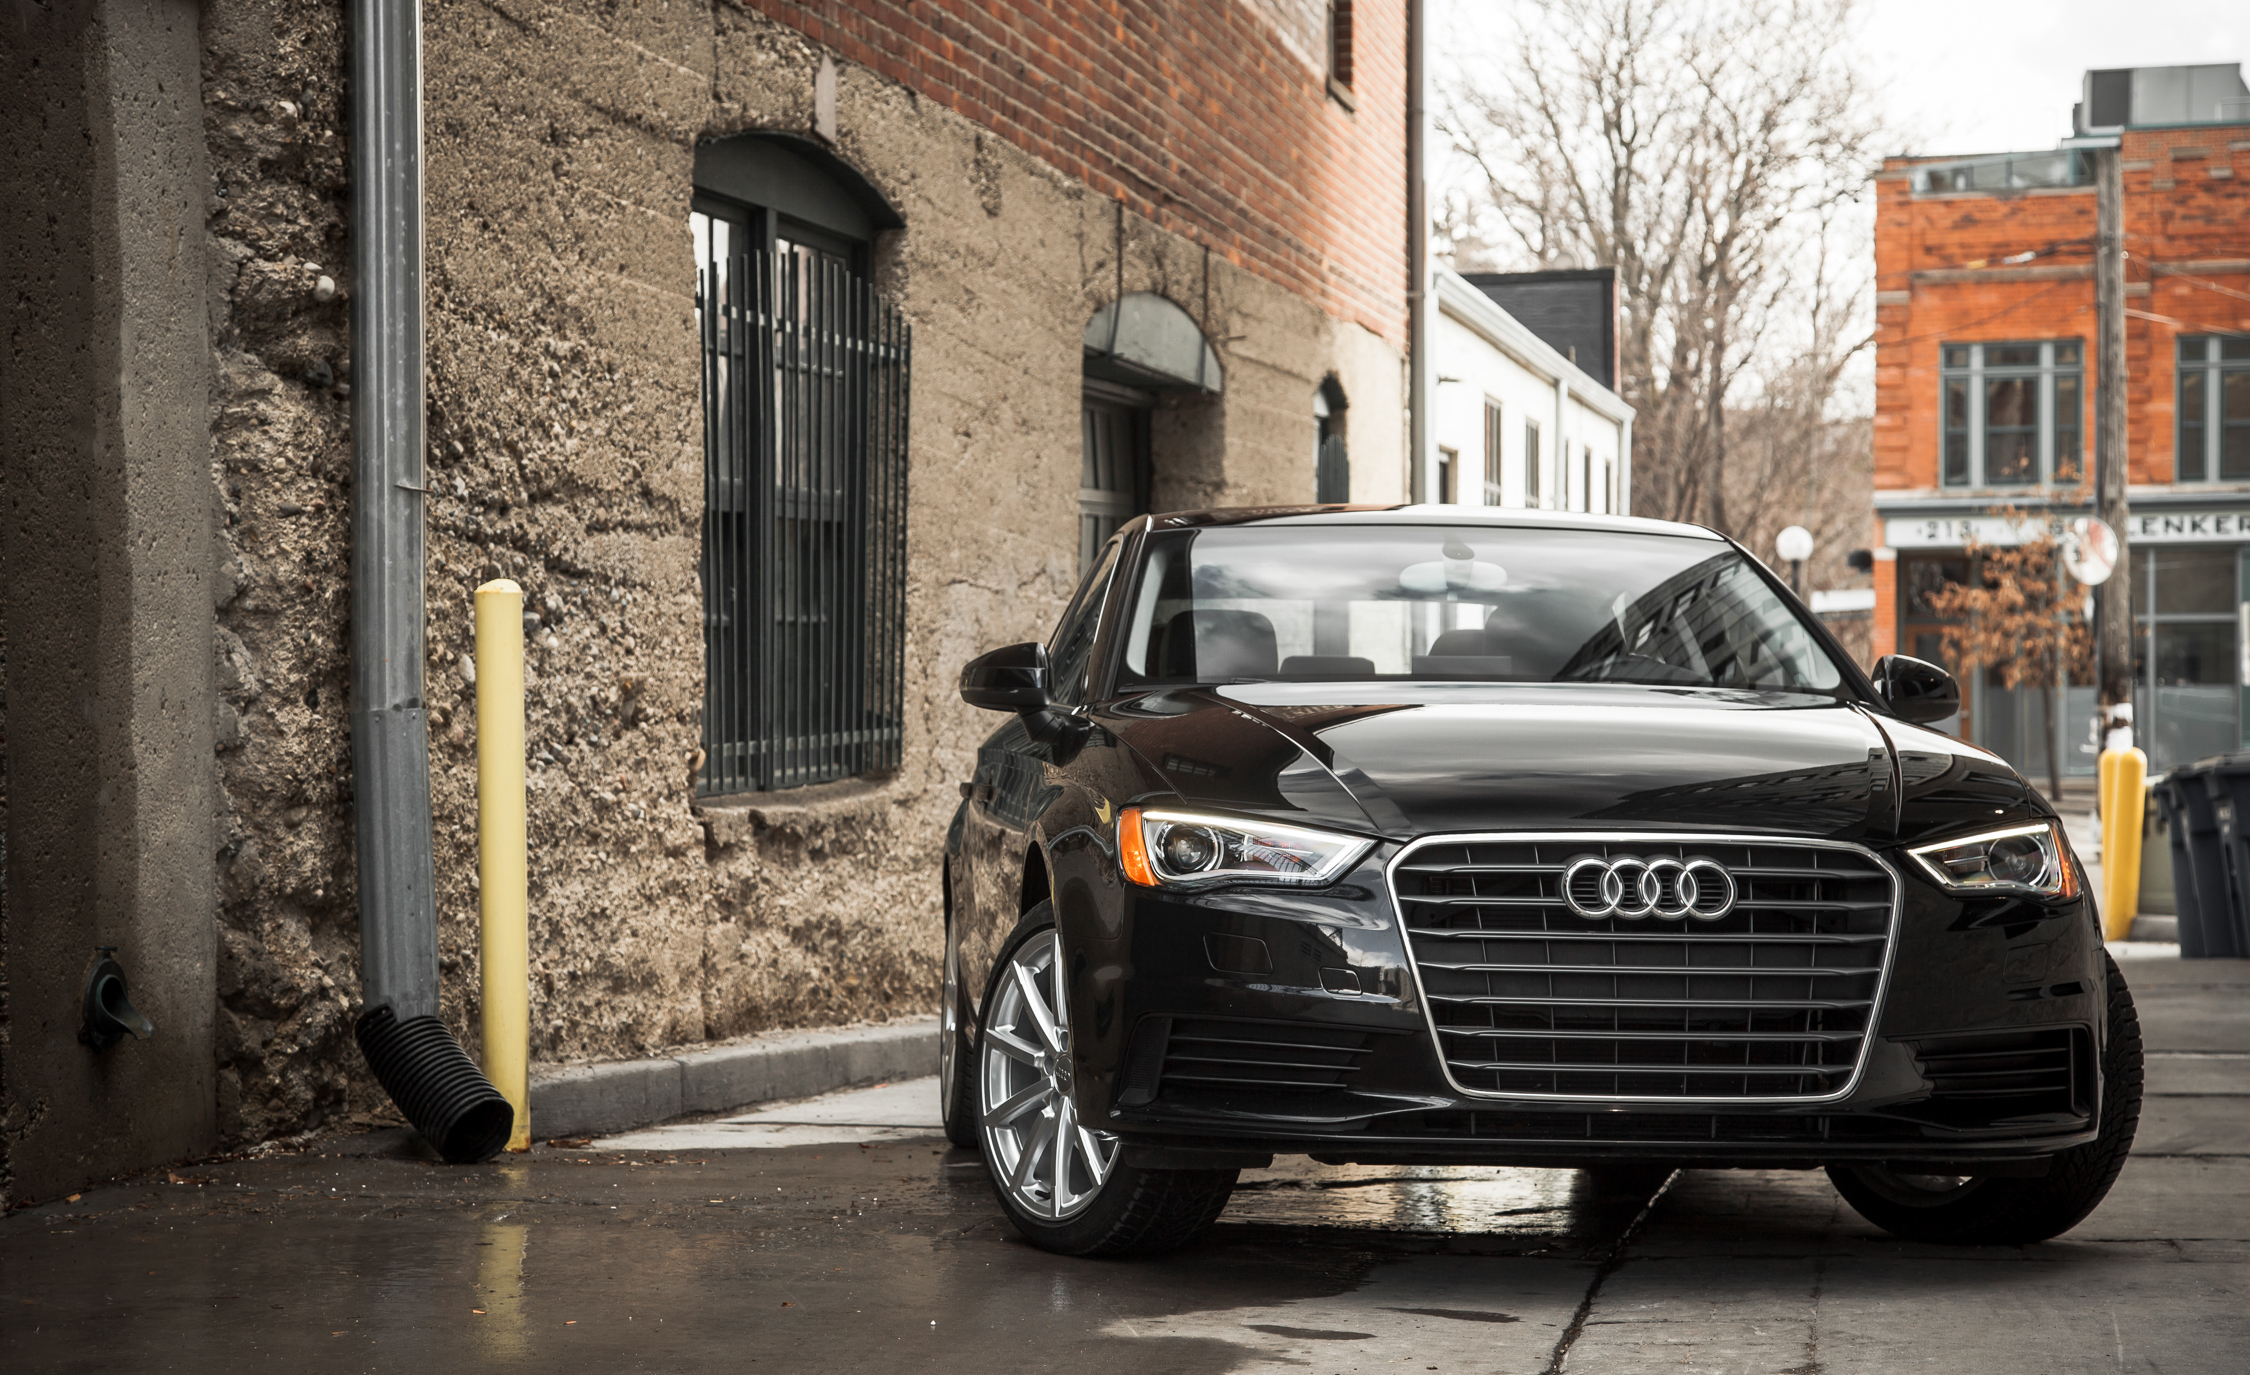 2015 Audi A3 TDI Exterior Front (Photo 24 of 50)